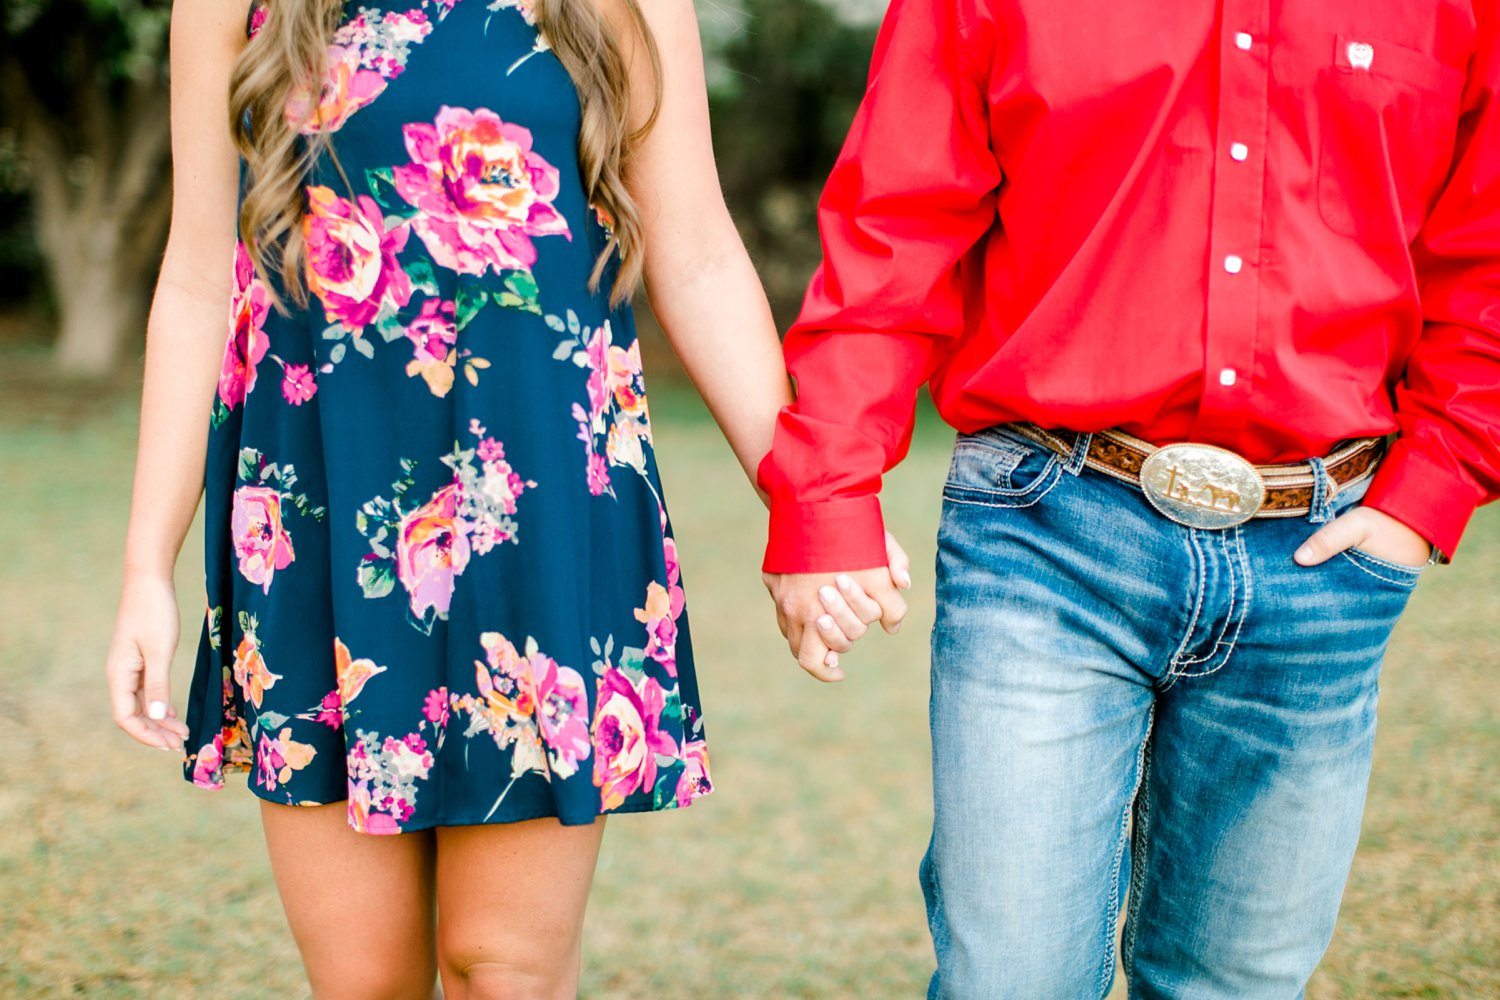 bailey-and-scotland-church-engagement-lubbock-photographer0007.jpg